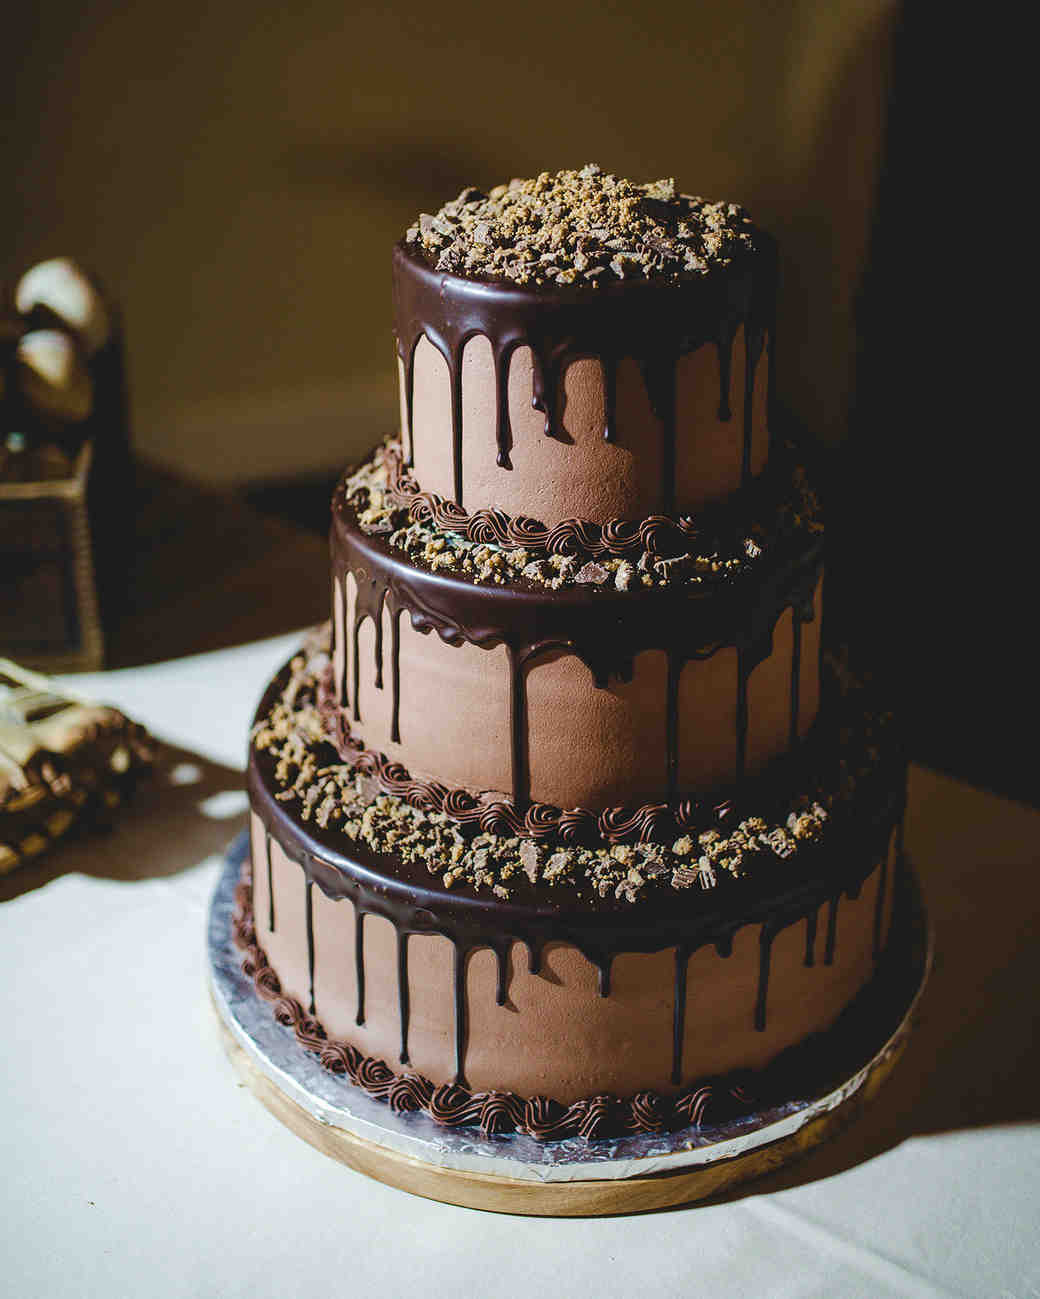 Wedding Cakes Chocolate  26 Chocolate Wedding Cake Ideas That Will Blow Your Guests